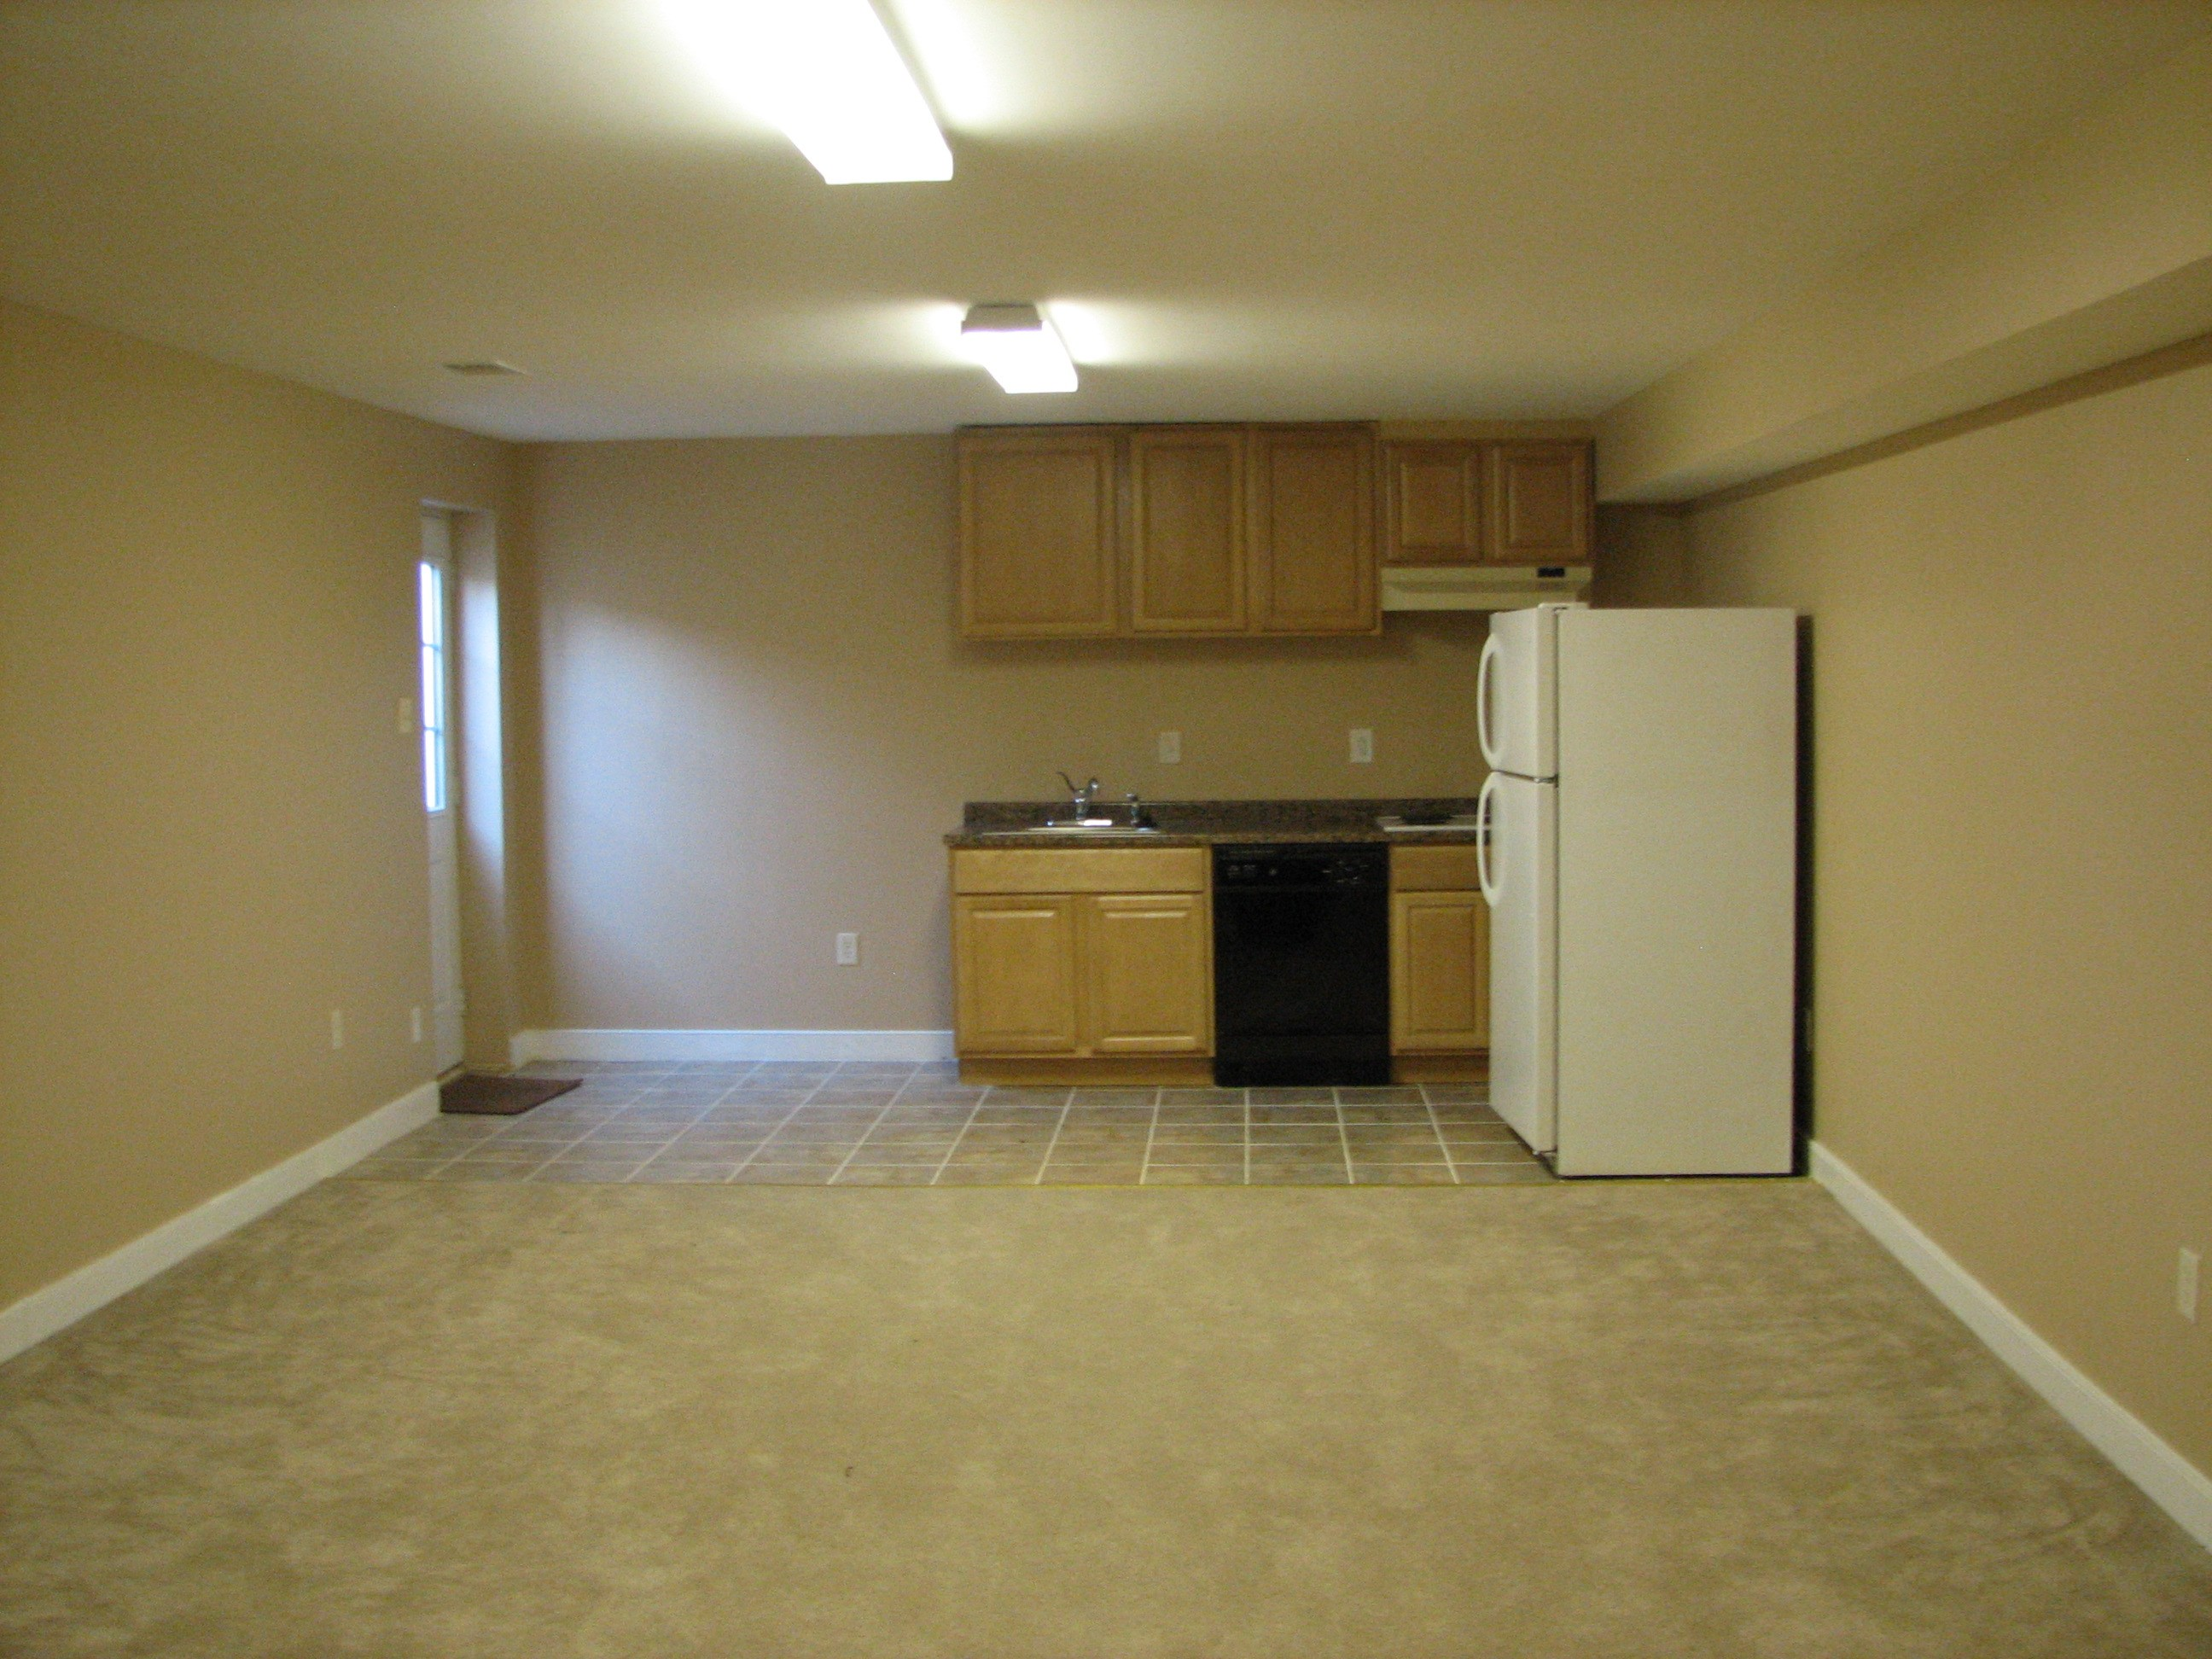 Basement For Rent In Alexandria Va find basement apartment for rent in alexandria, va | sulekha rentals